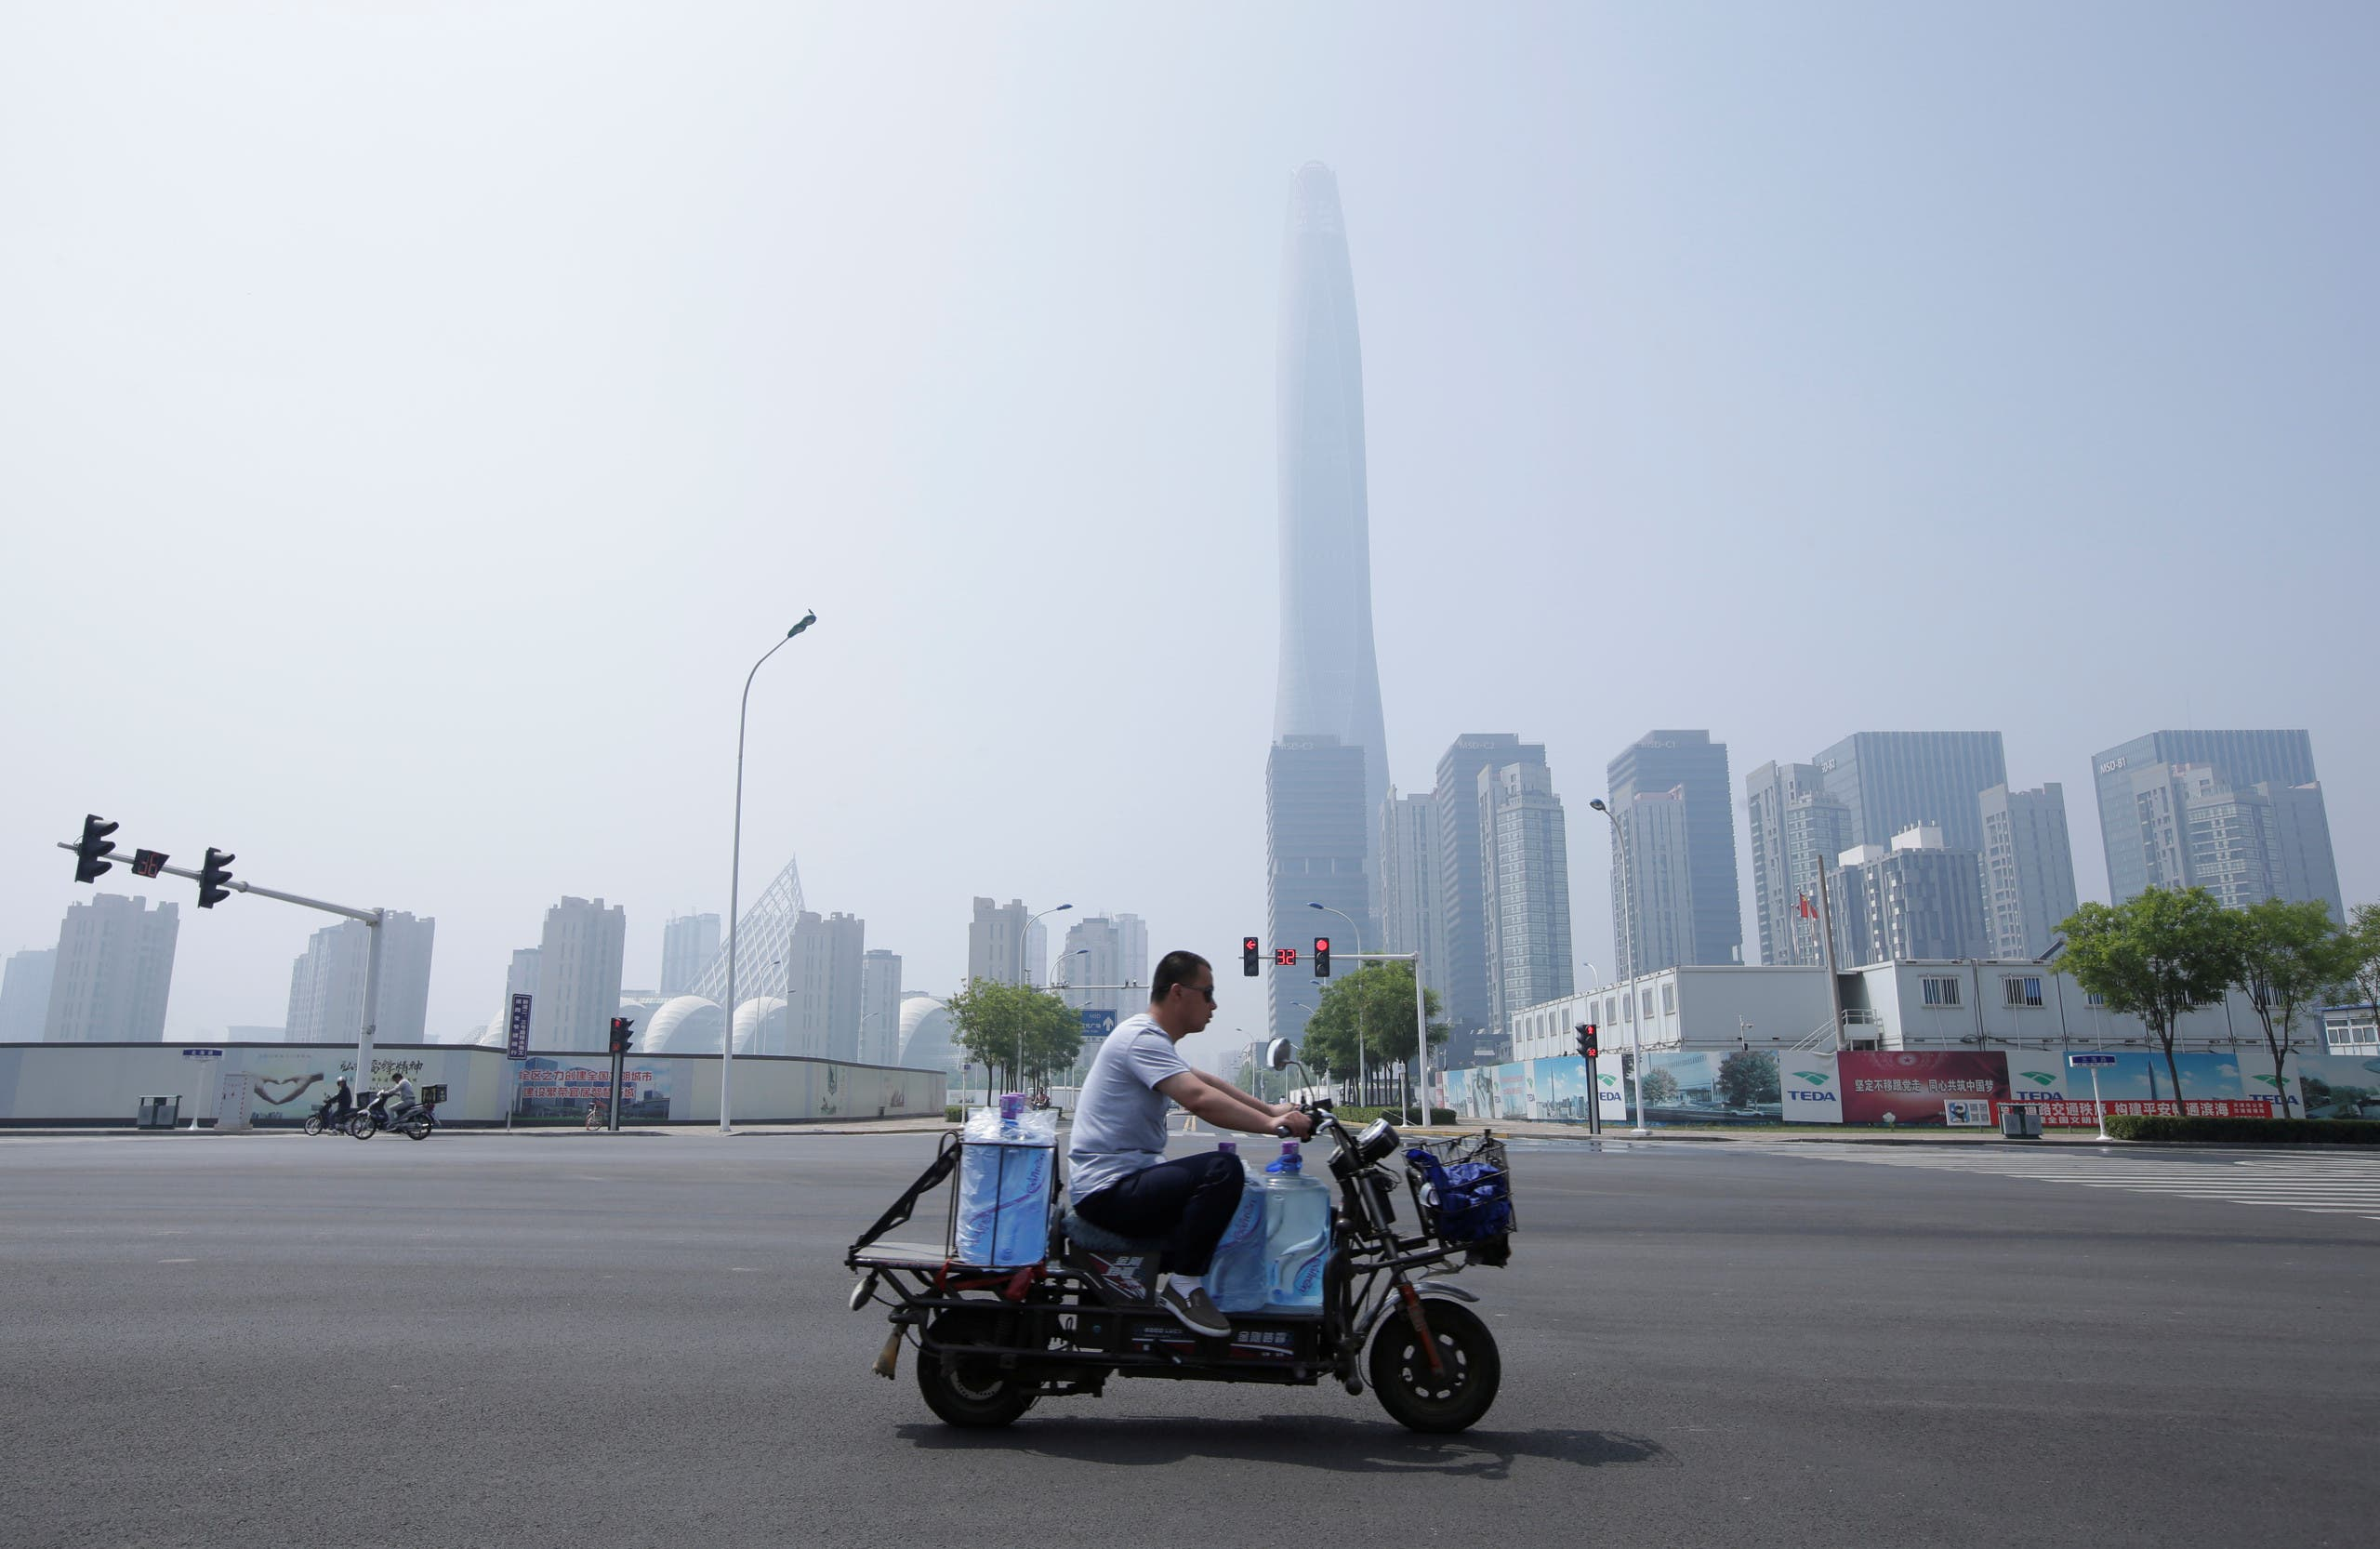 A man rides an electric motorcycle carrying water past Chow Tai Fook Financial Center in Tianjin's Binhai new district, China May 16, 2019. Picture taken May 16, 2019. (Reuters)